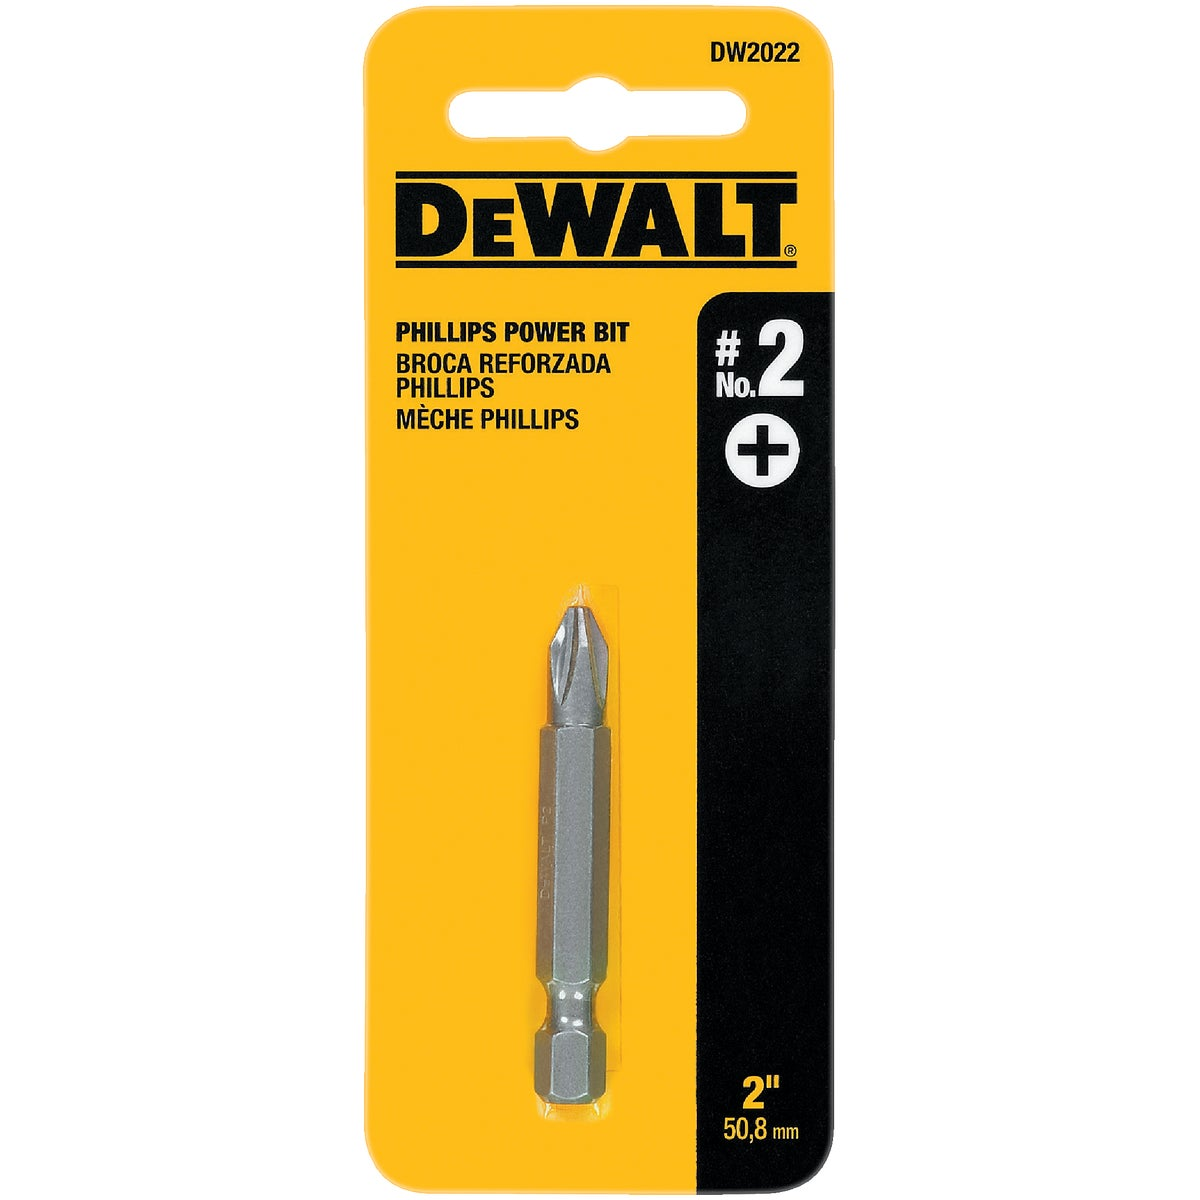 "#2 2"" PHILLIPS POWER BIT - DW2022B by DeWalt"